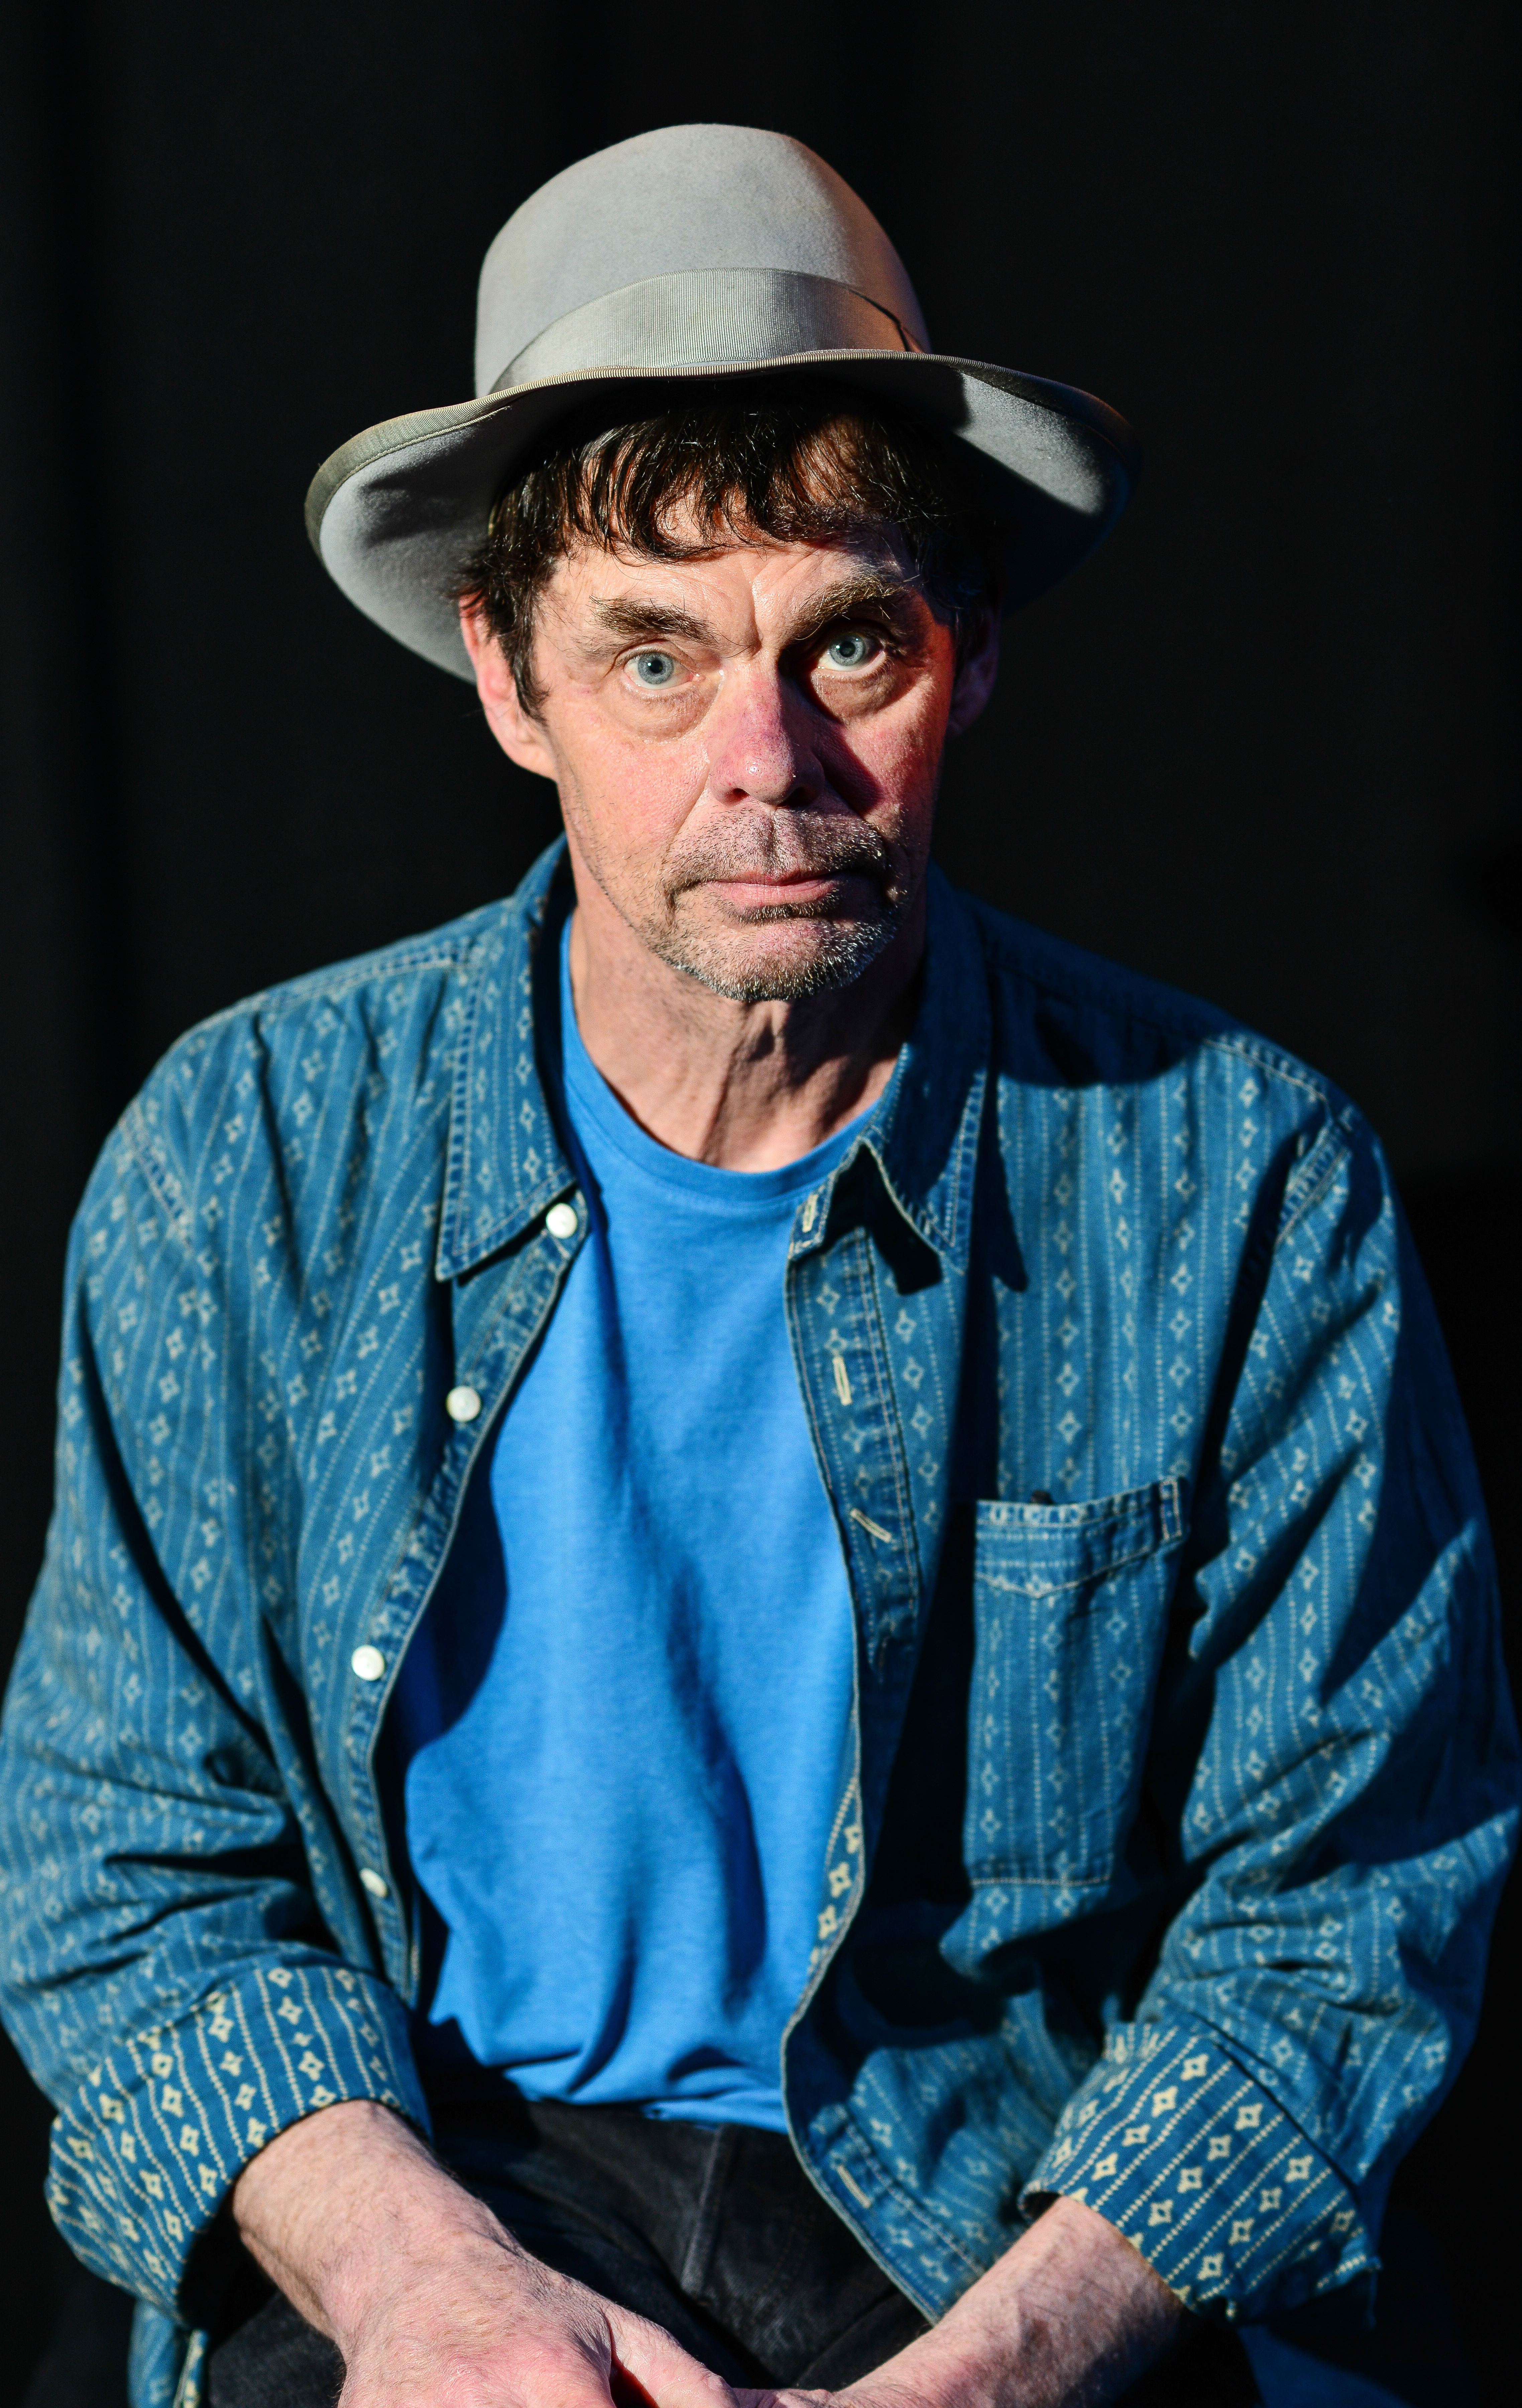 Photograph of Rich Hall